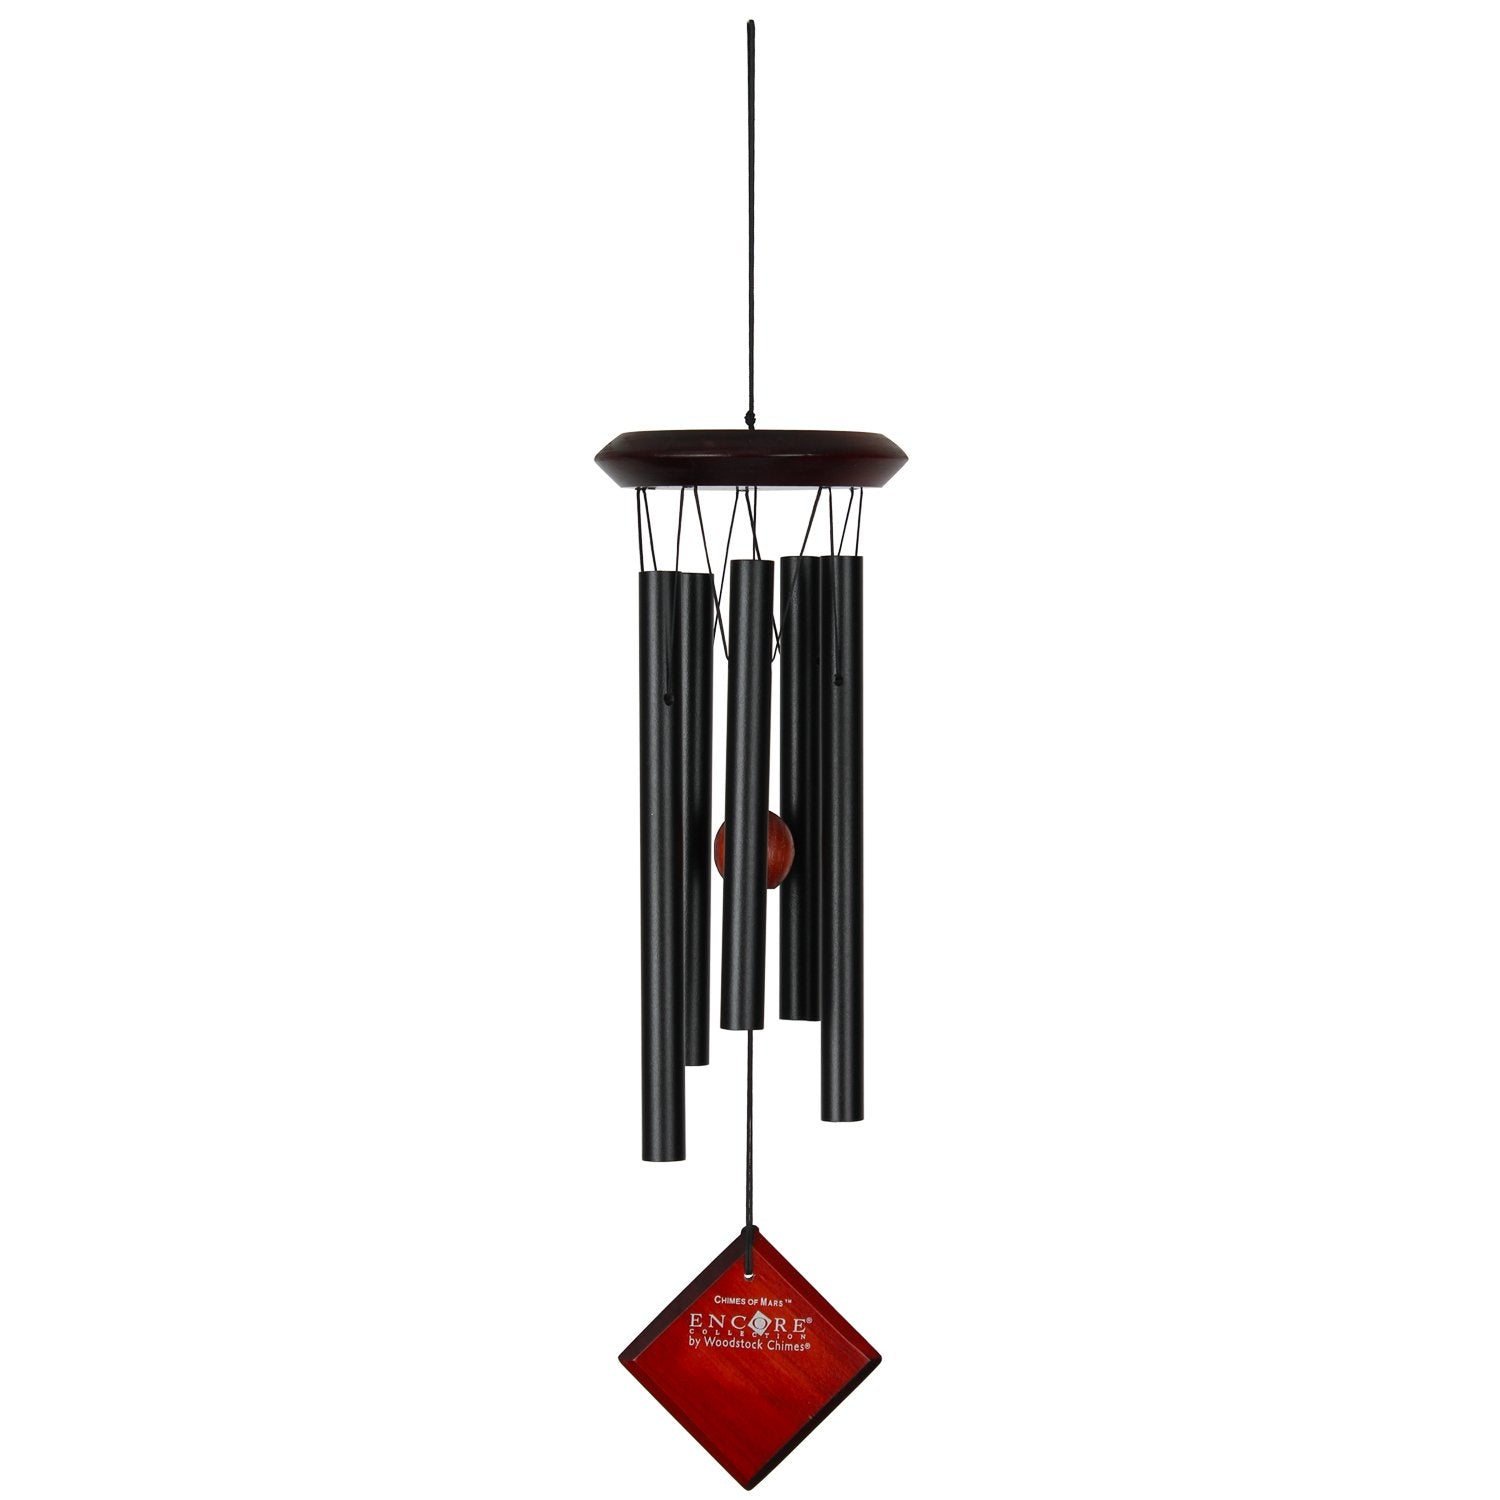 Encore Chimes of Mars - Black full product image